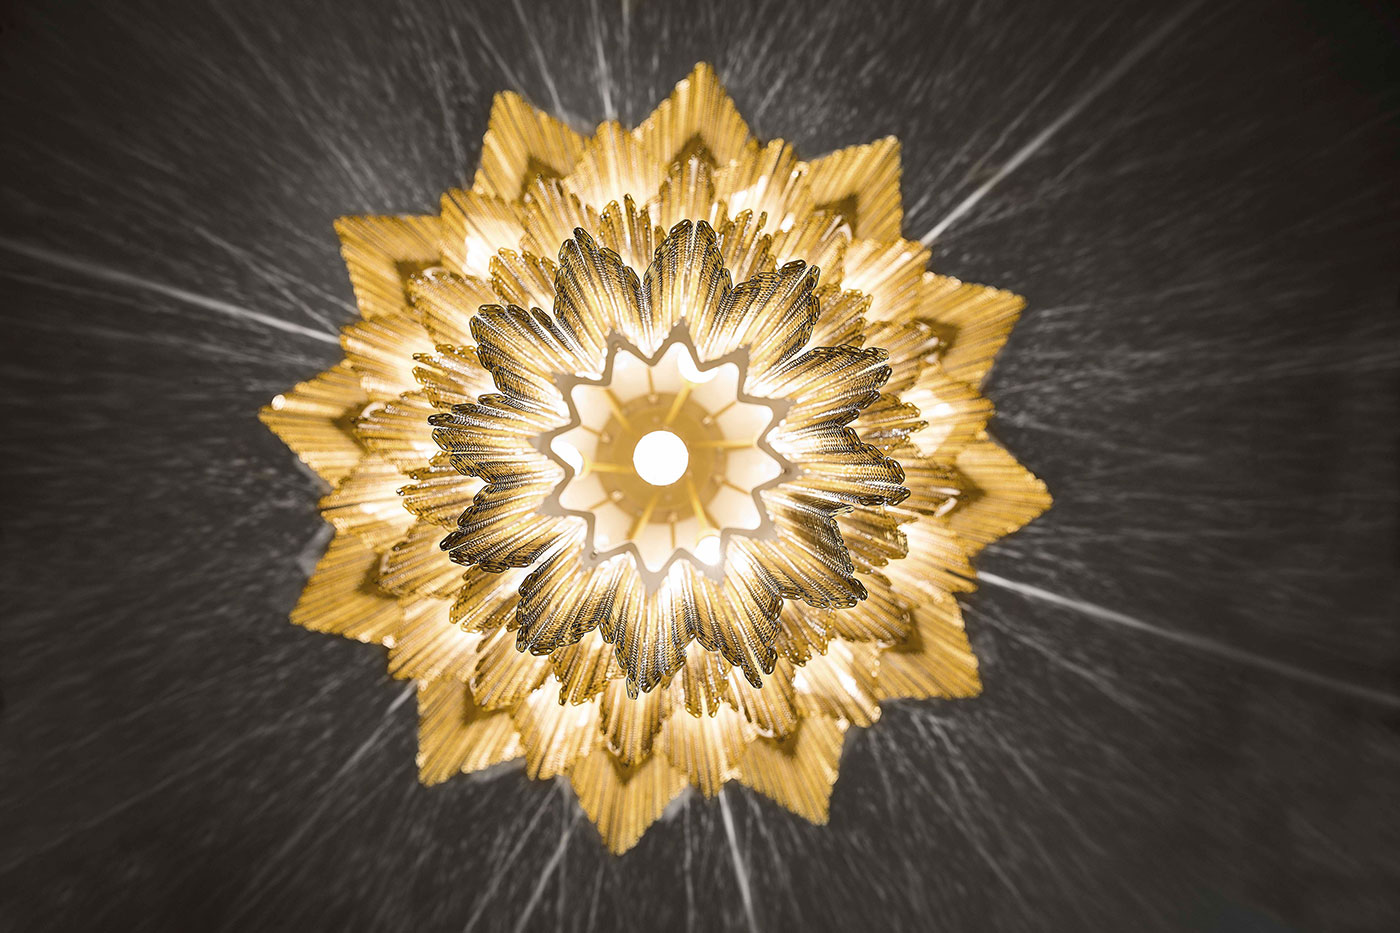 STAR detail 2 zenith130 gold aluminum 1